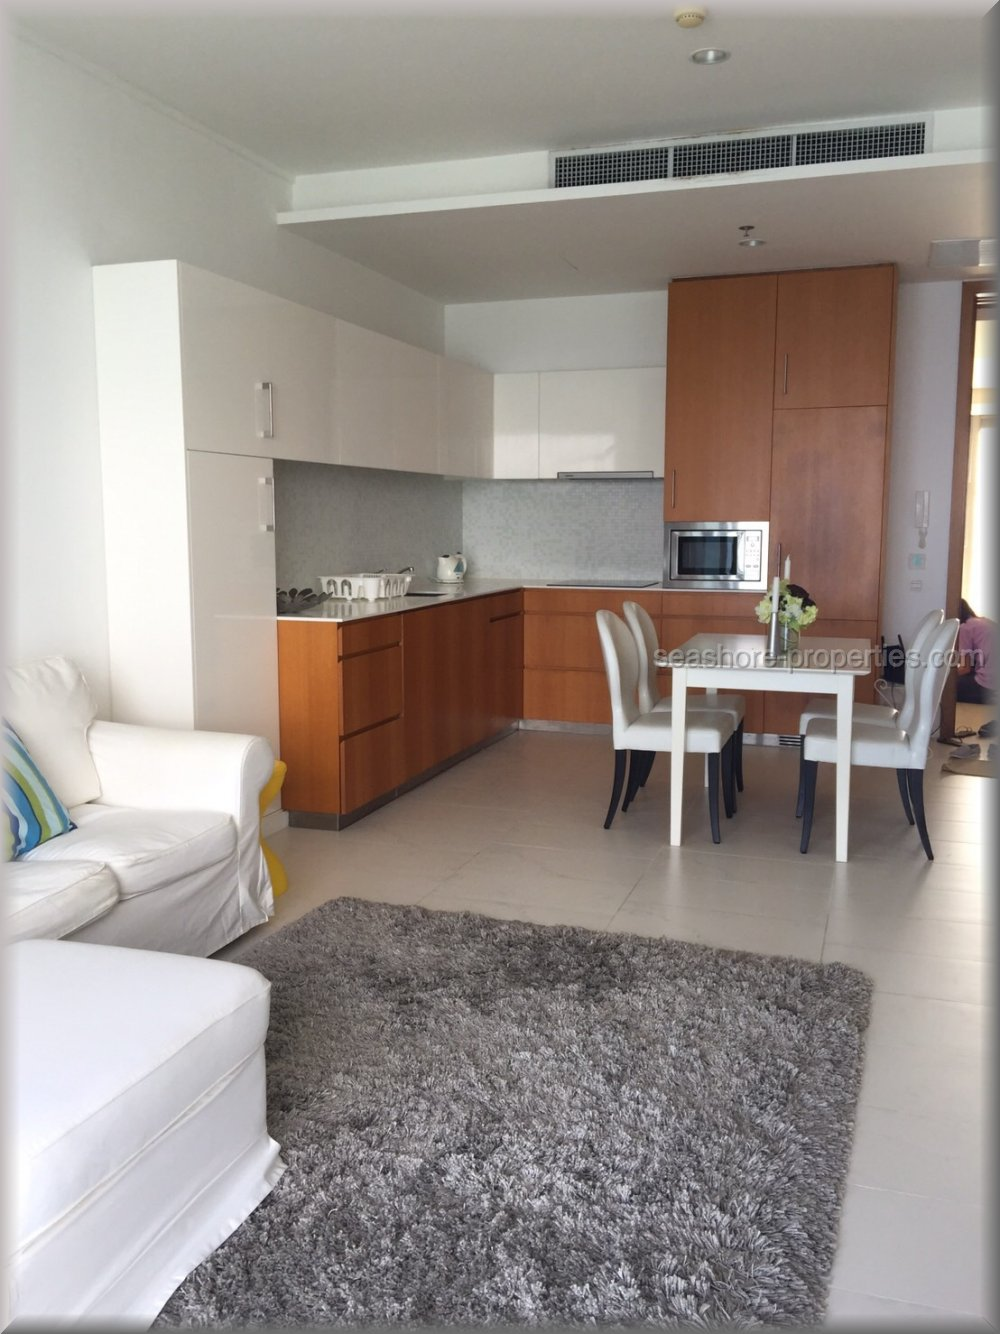 pic-8-Seashore Properties (Thailand) Co. Ltd. Northpoint Condominium   for sale in Wong Amat Pattaya